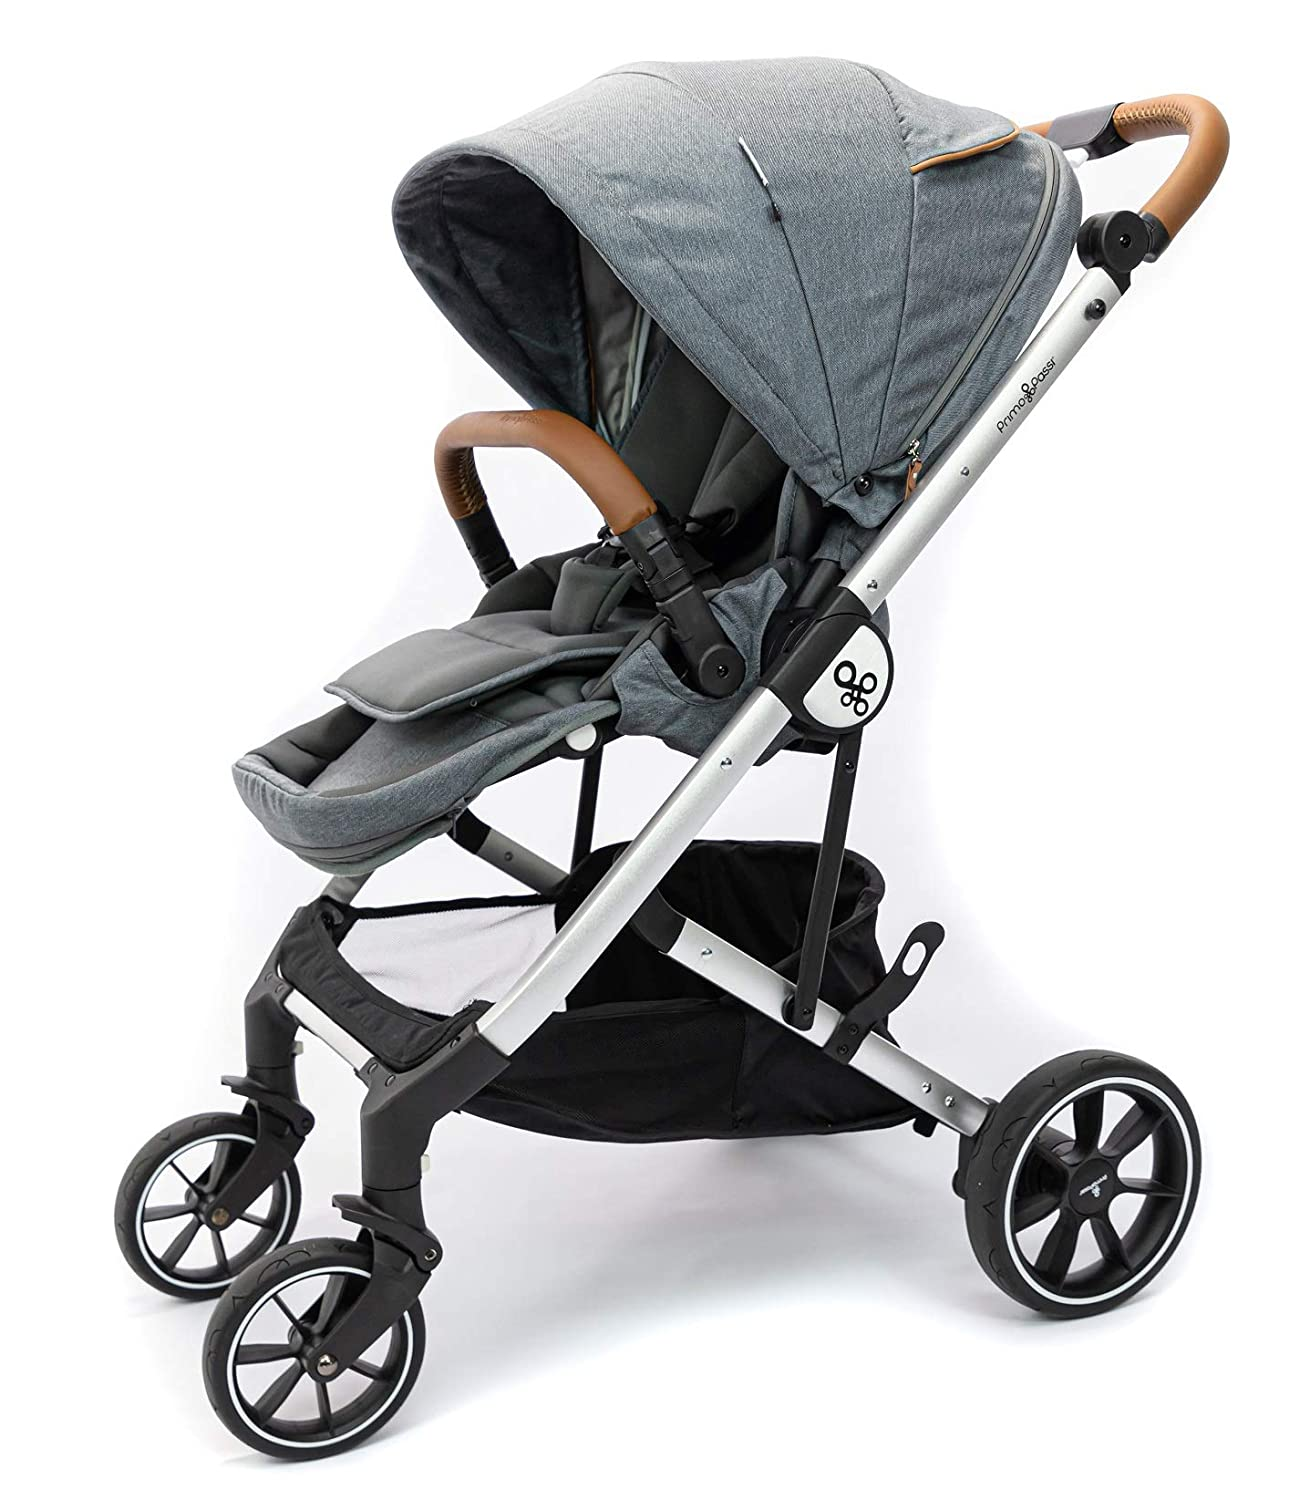 Primo Passi Icon Baby Stroller - Compact Stroller for Travel with Adjustable Footrest, Ventilated Canopy and Reversible Seat (Grey Melange)